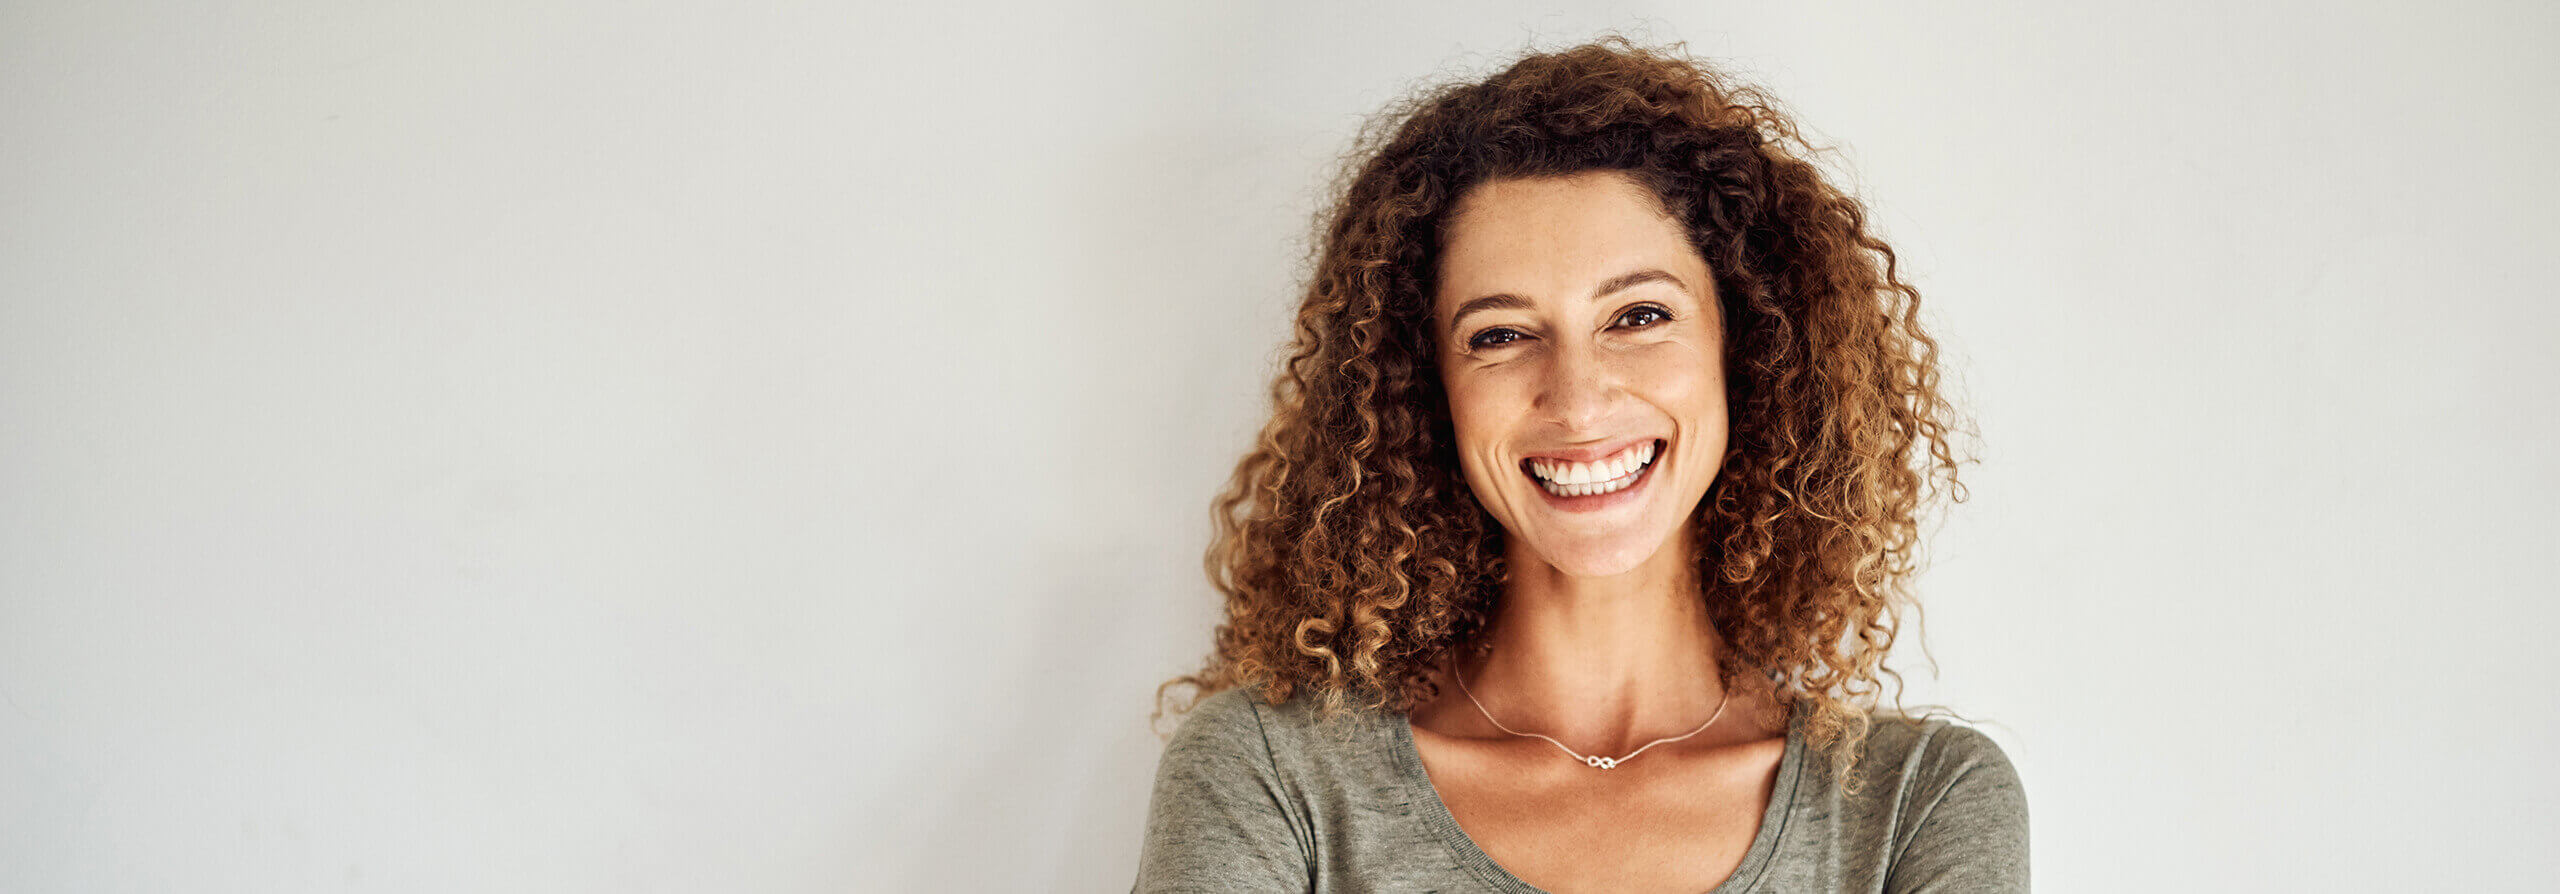 woman with a bright, white smile